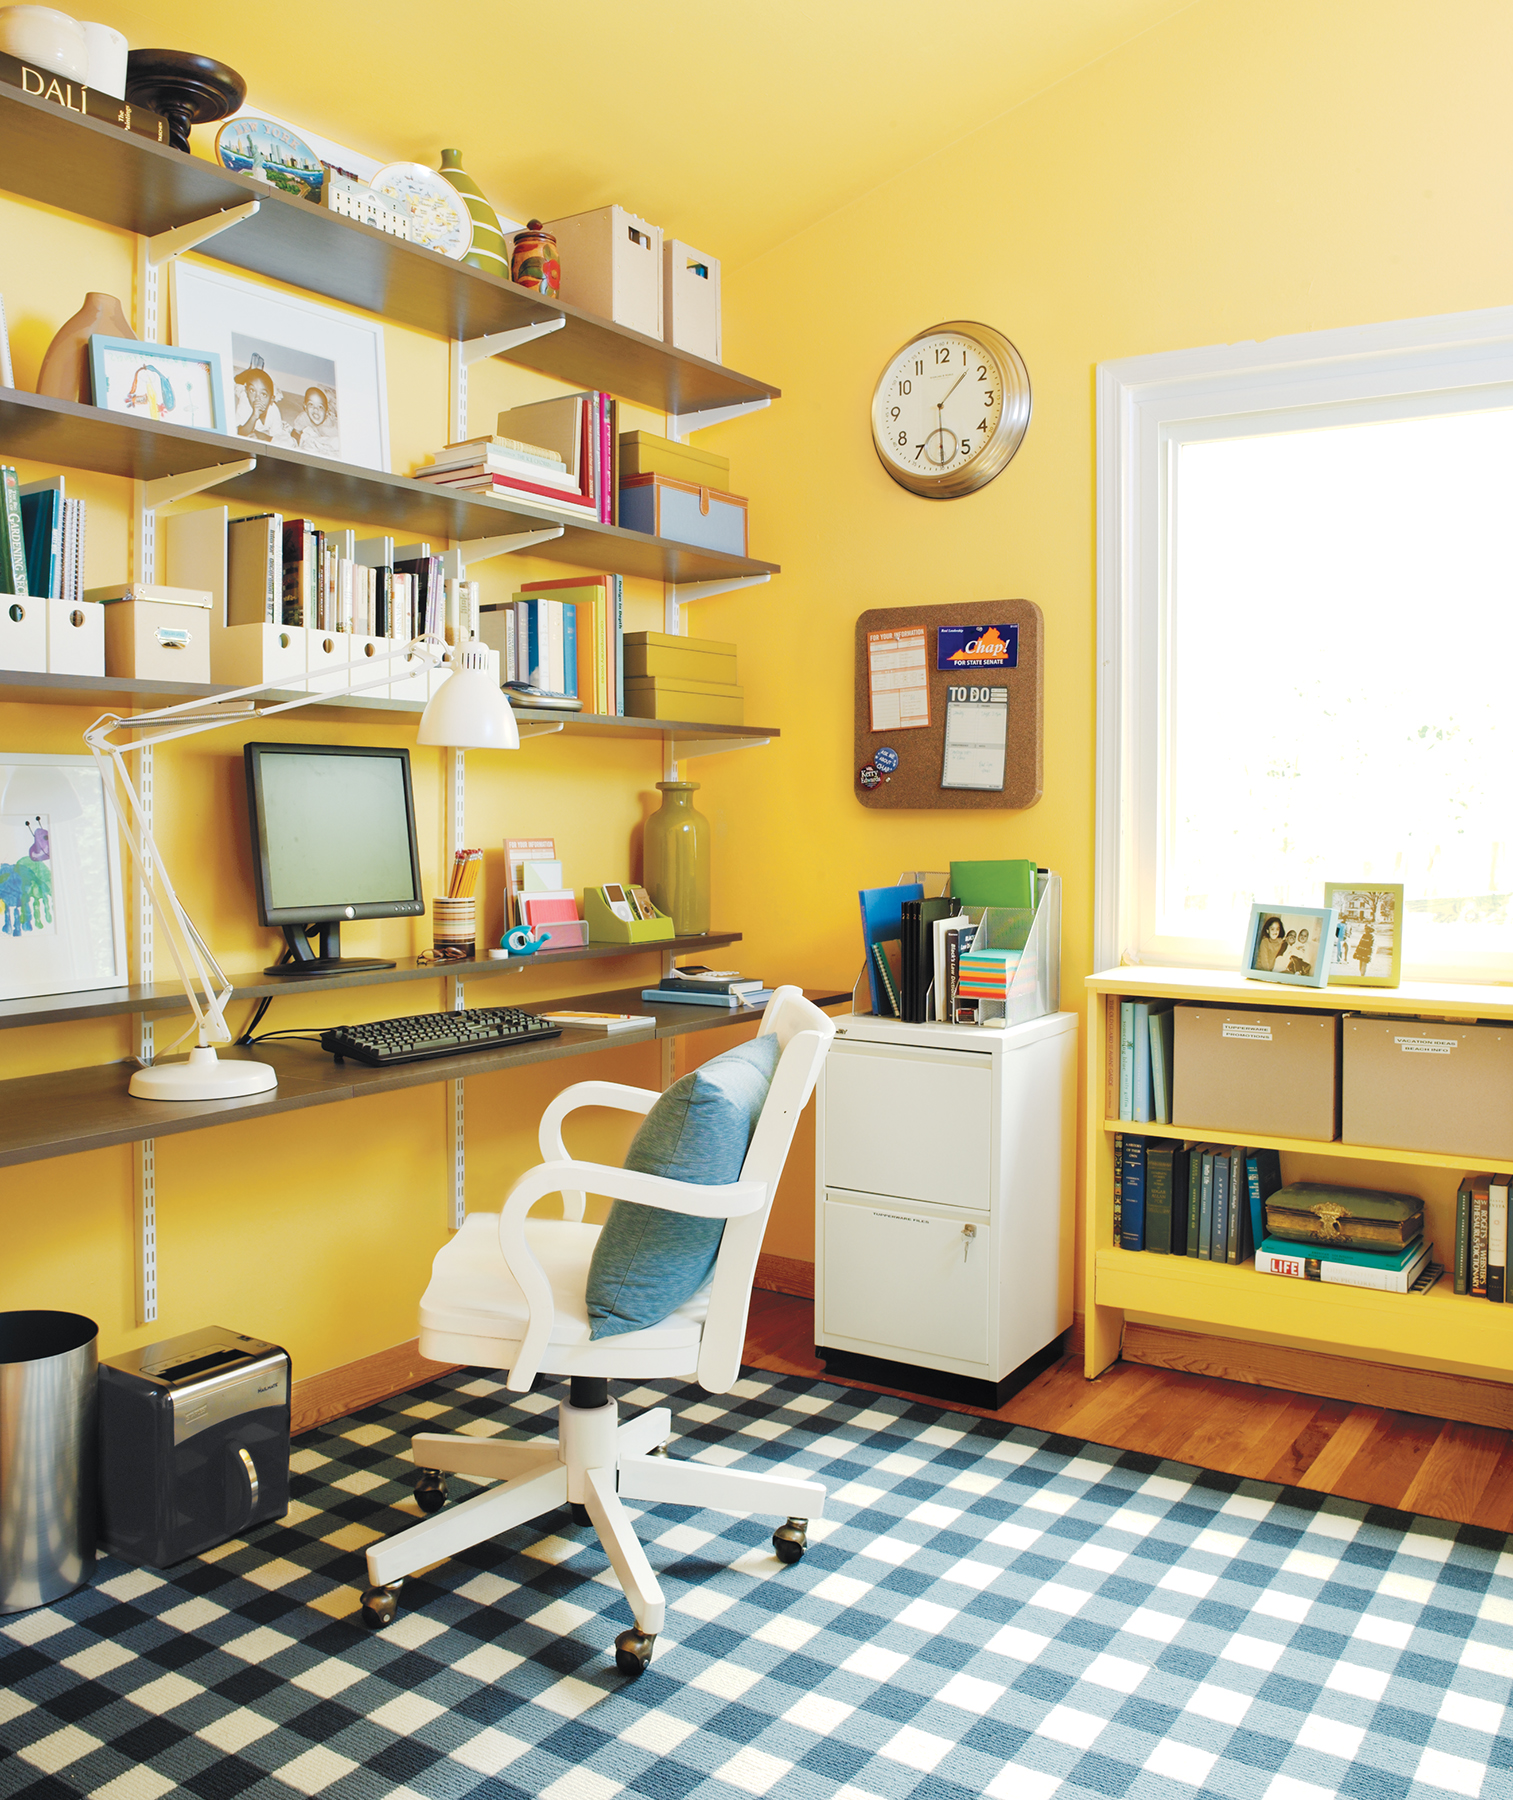 Charmant When You Canu0027t Devote An Entire Room To A Home Office, Save Space By Saying  Good Bye To Clunky Desks. Opt For Sturdy Shelves To House Your Computer And  ...